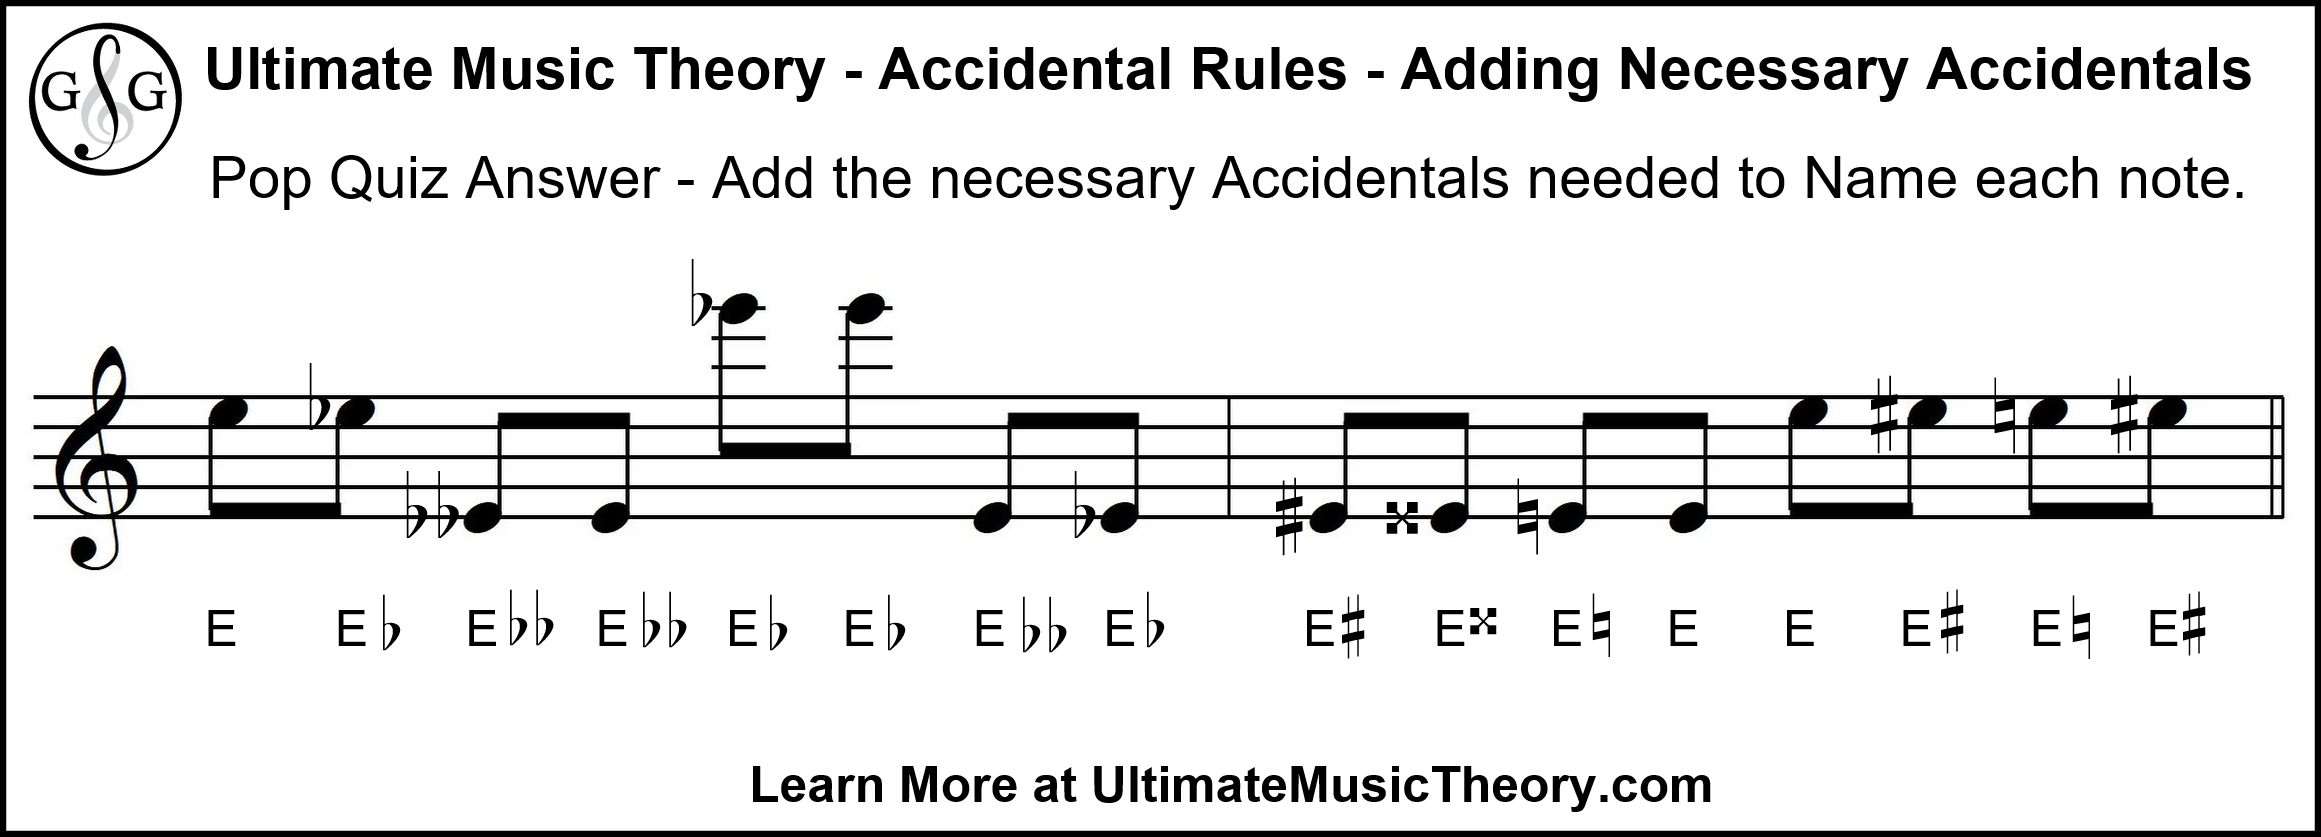 Ultimate Music Theory Pop quiz answers